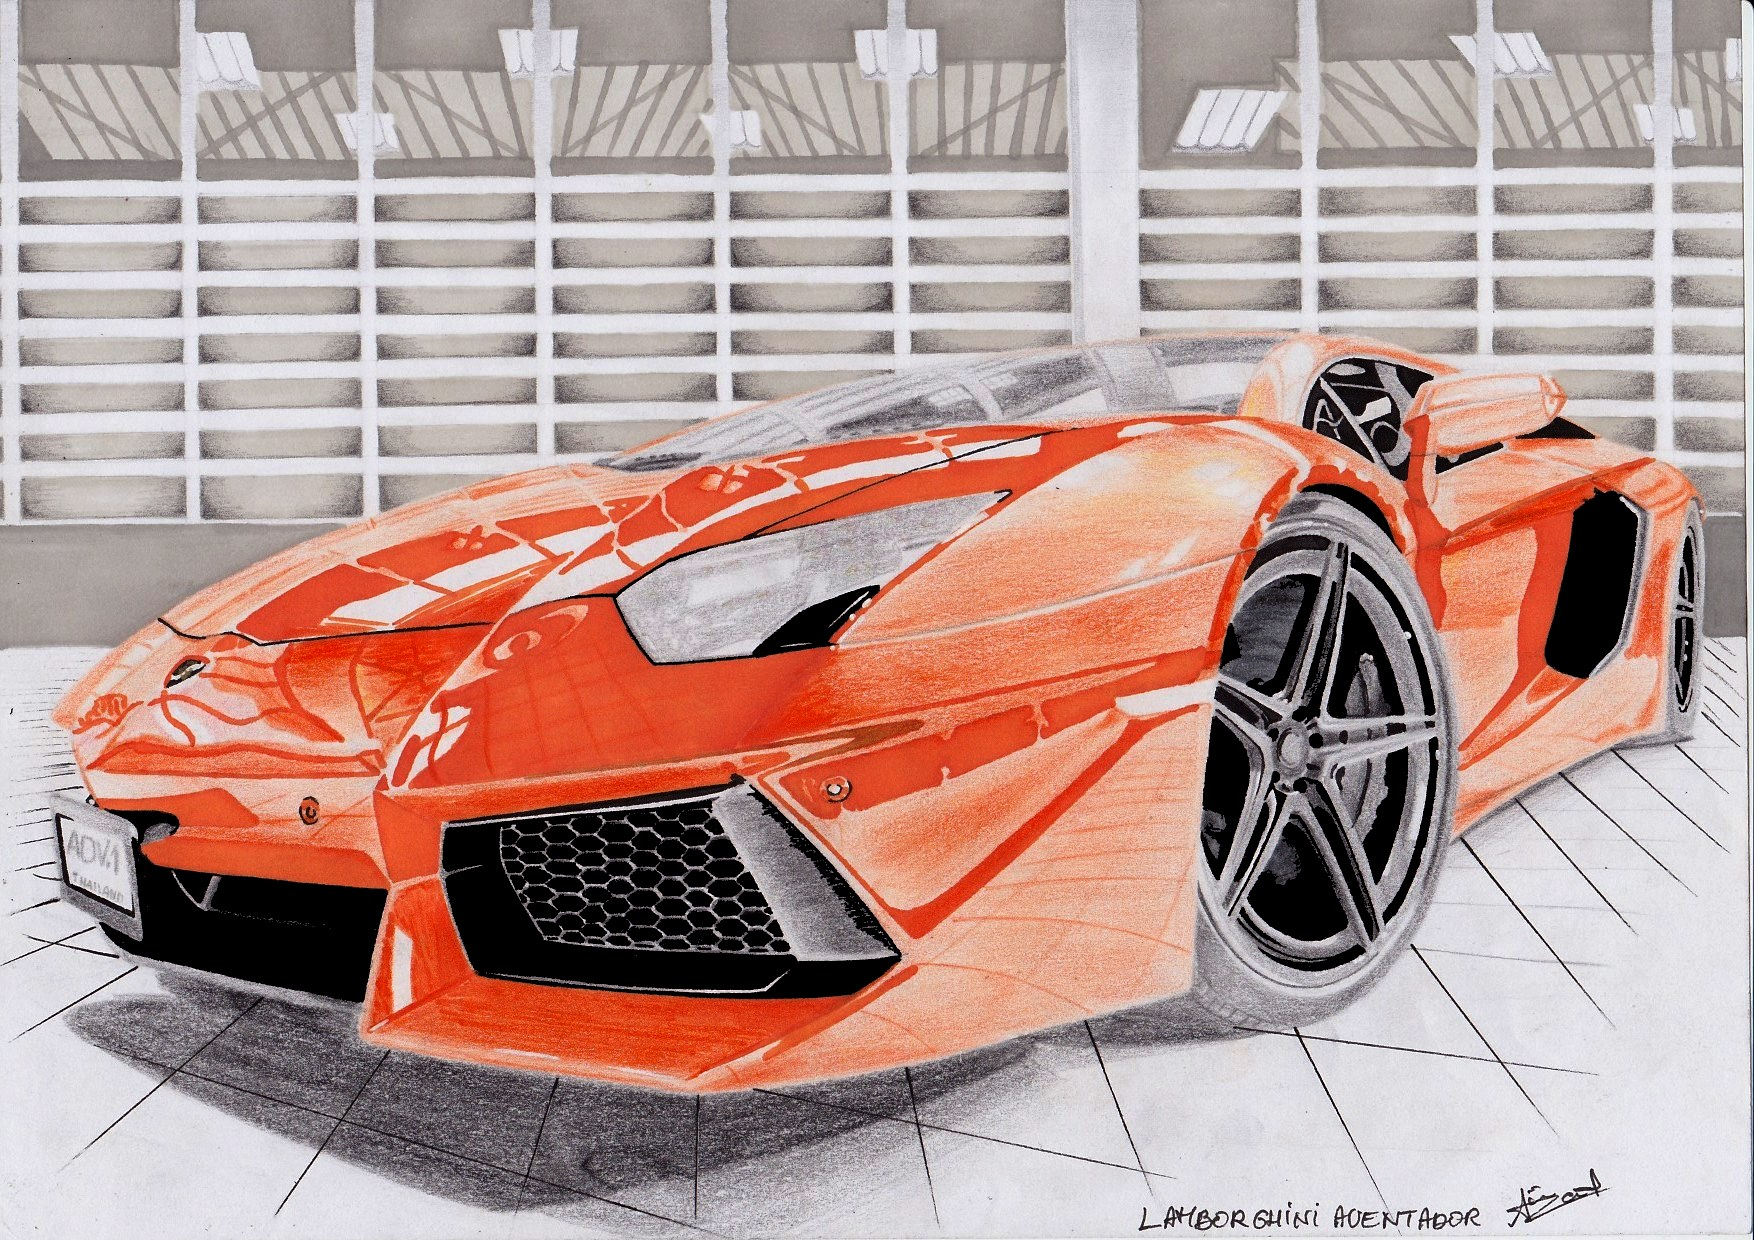 lamborghini aventador dessin id e d 39 image de voiture. Black Bedroom Furniture Sets. Home Design Ideas